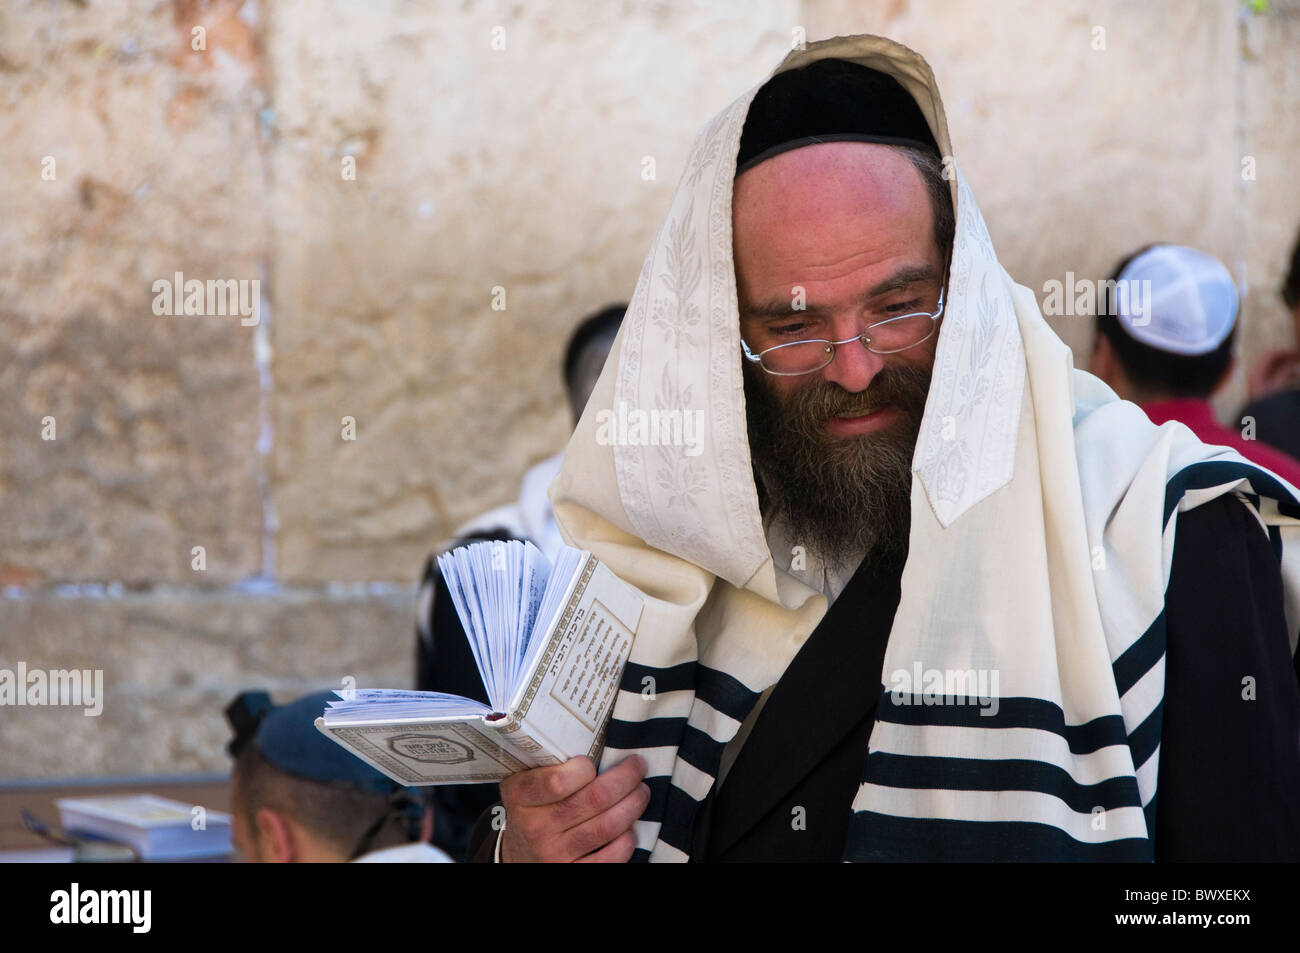 Hassidic Jew in prayer at the Western Wall in Jerusalem - Stock Image